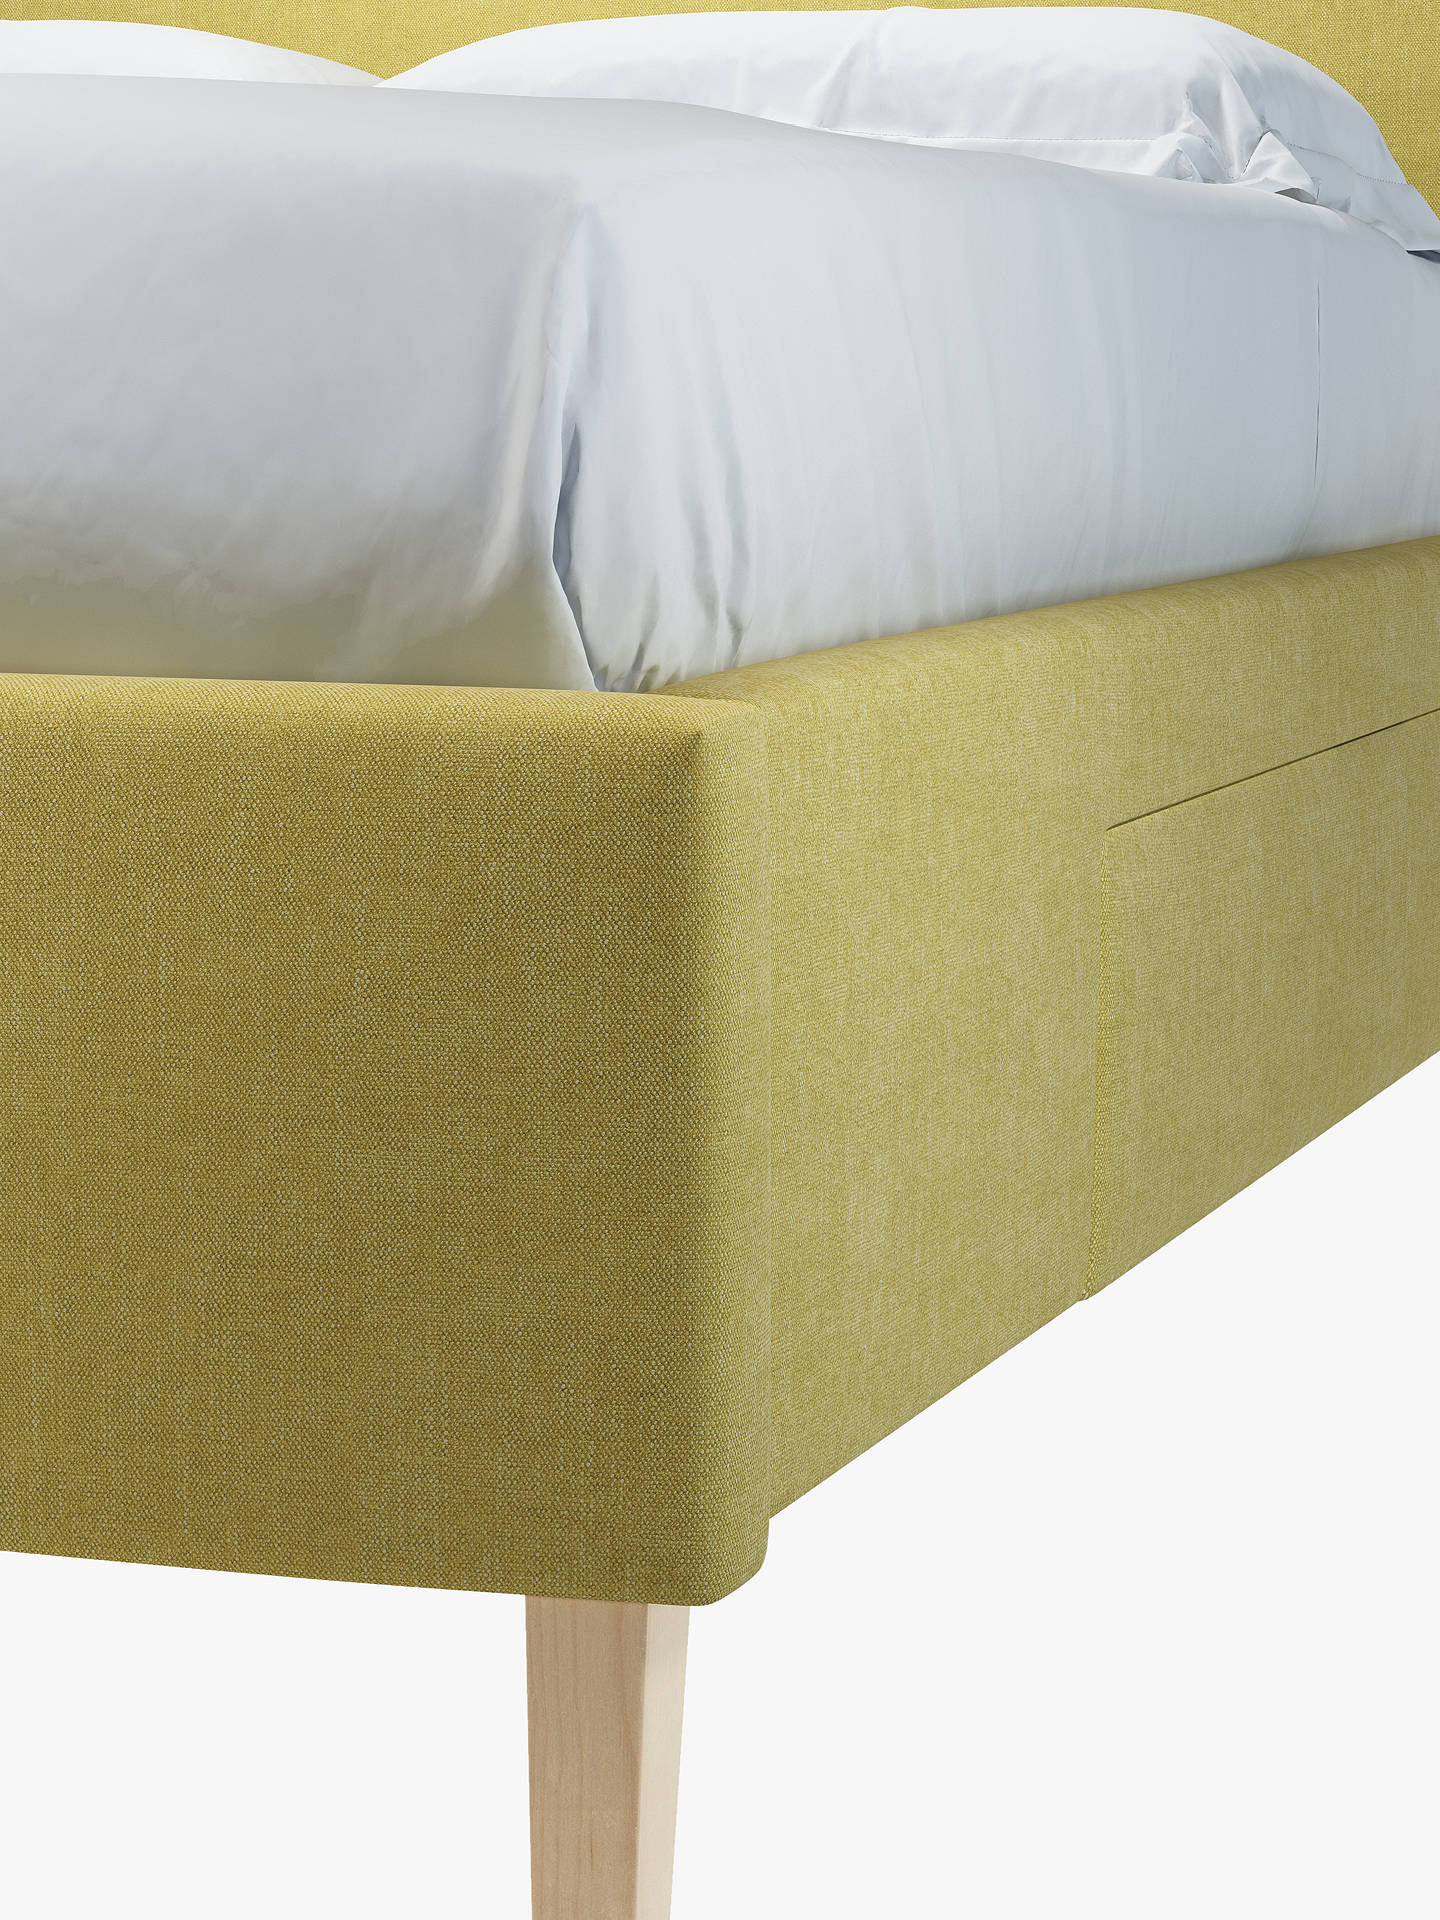 dd5269d42aac ... Buy John Lewis & Partners Emily 2 Drawer Storage Upholstered Bed Frame,  Double, Erin ...